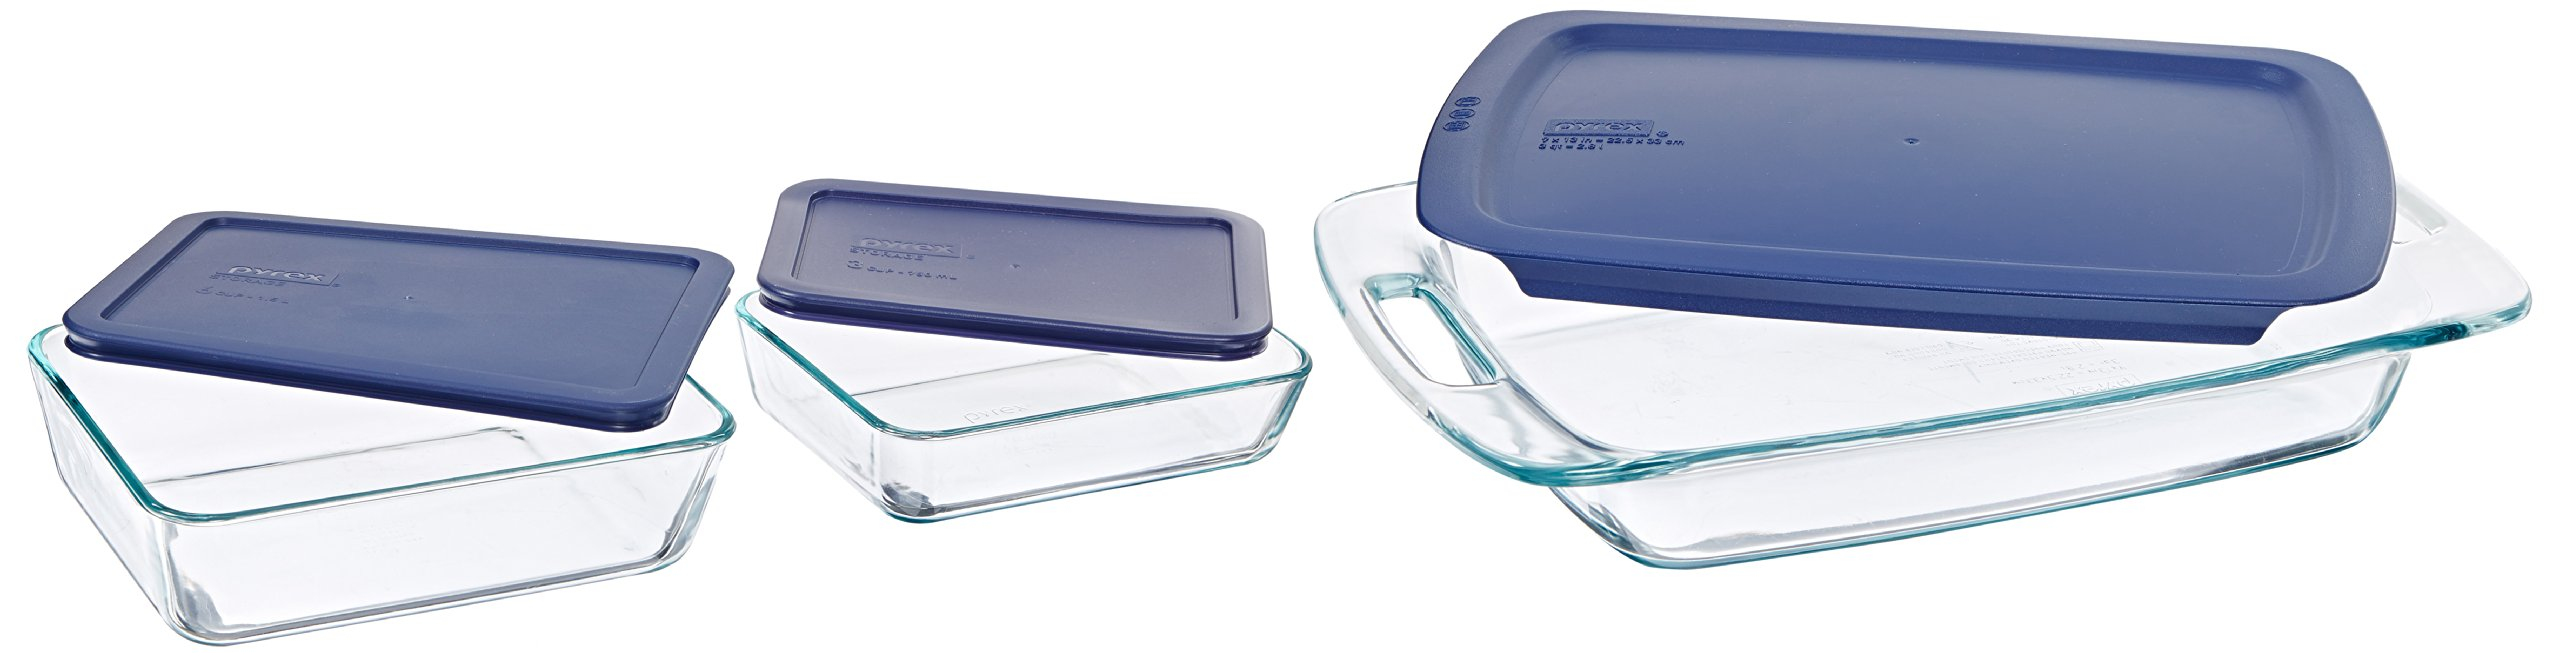 Pyrex Easy Grab 6-Piece Glass Bakeware and Food Storage Set